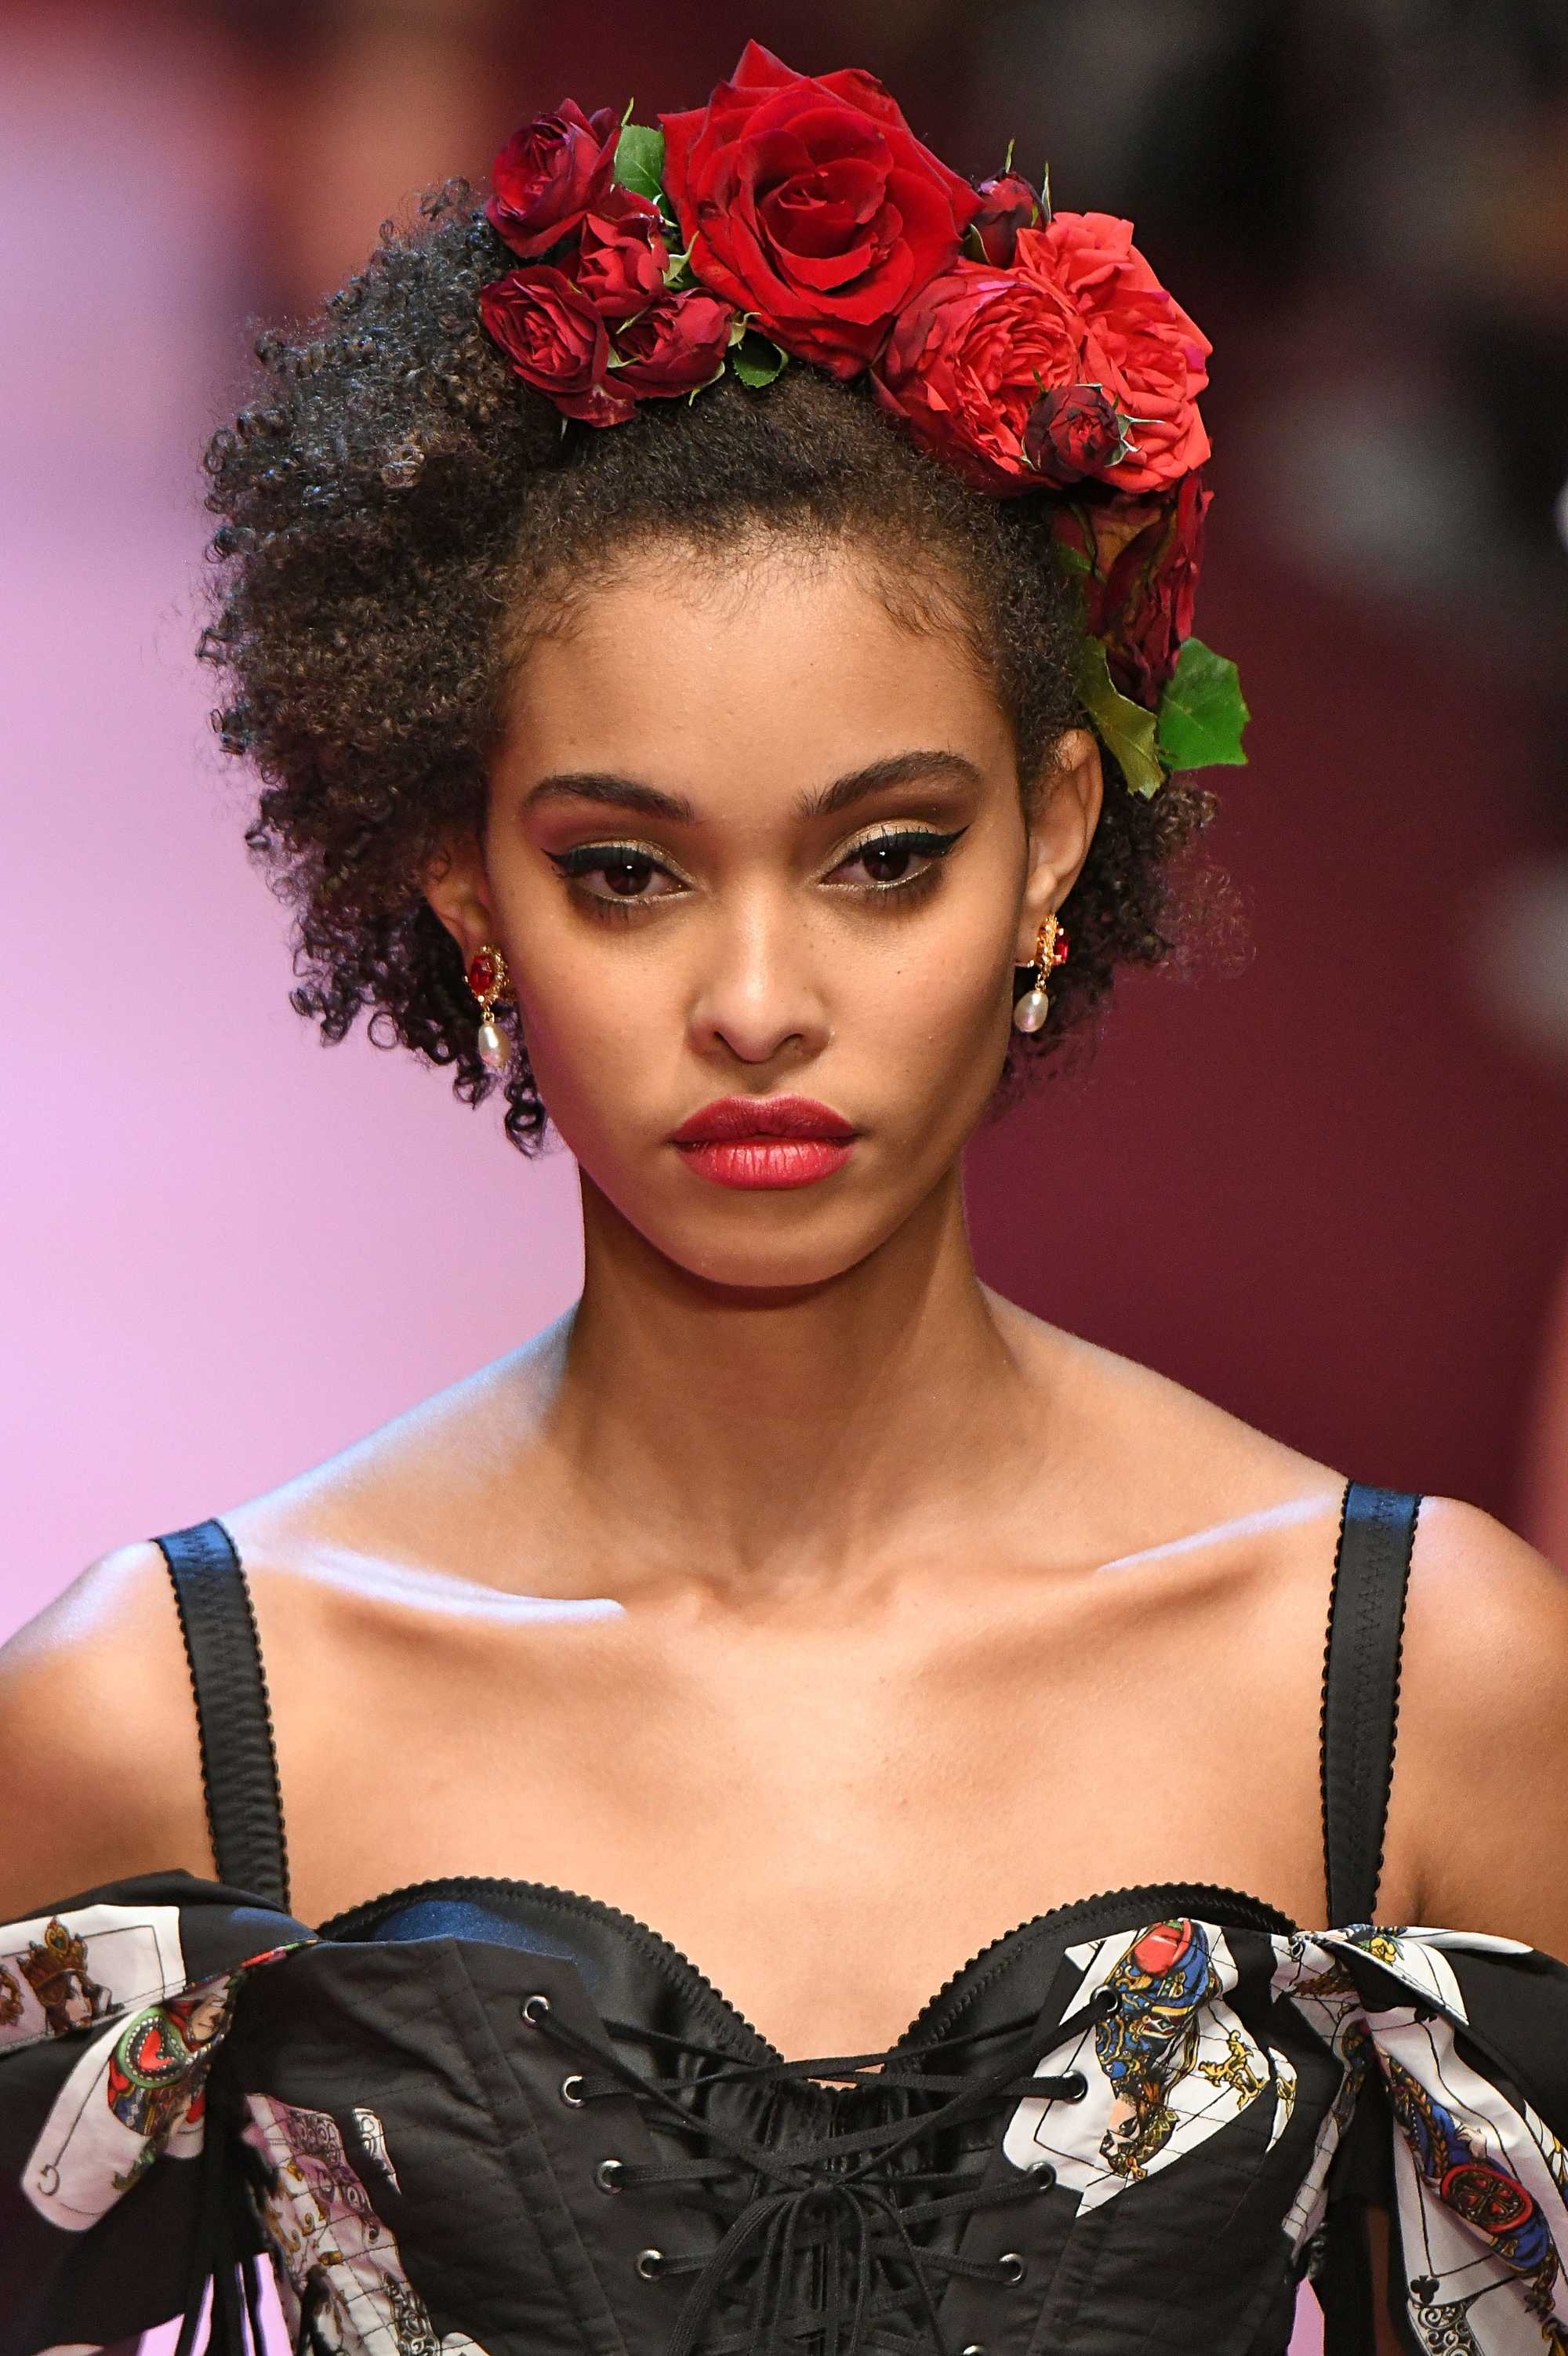 natural hair styles: close up shot of a woman with medium brown short natural hair accessorised with red roses, wearing a corset top and walking down the runway